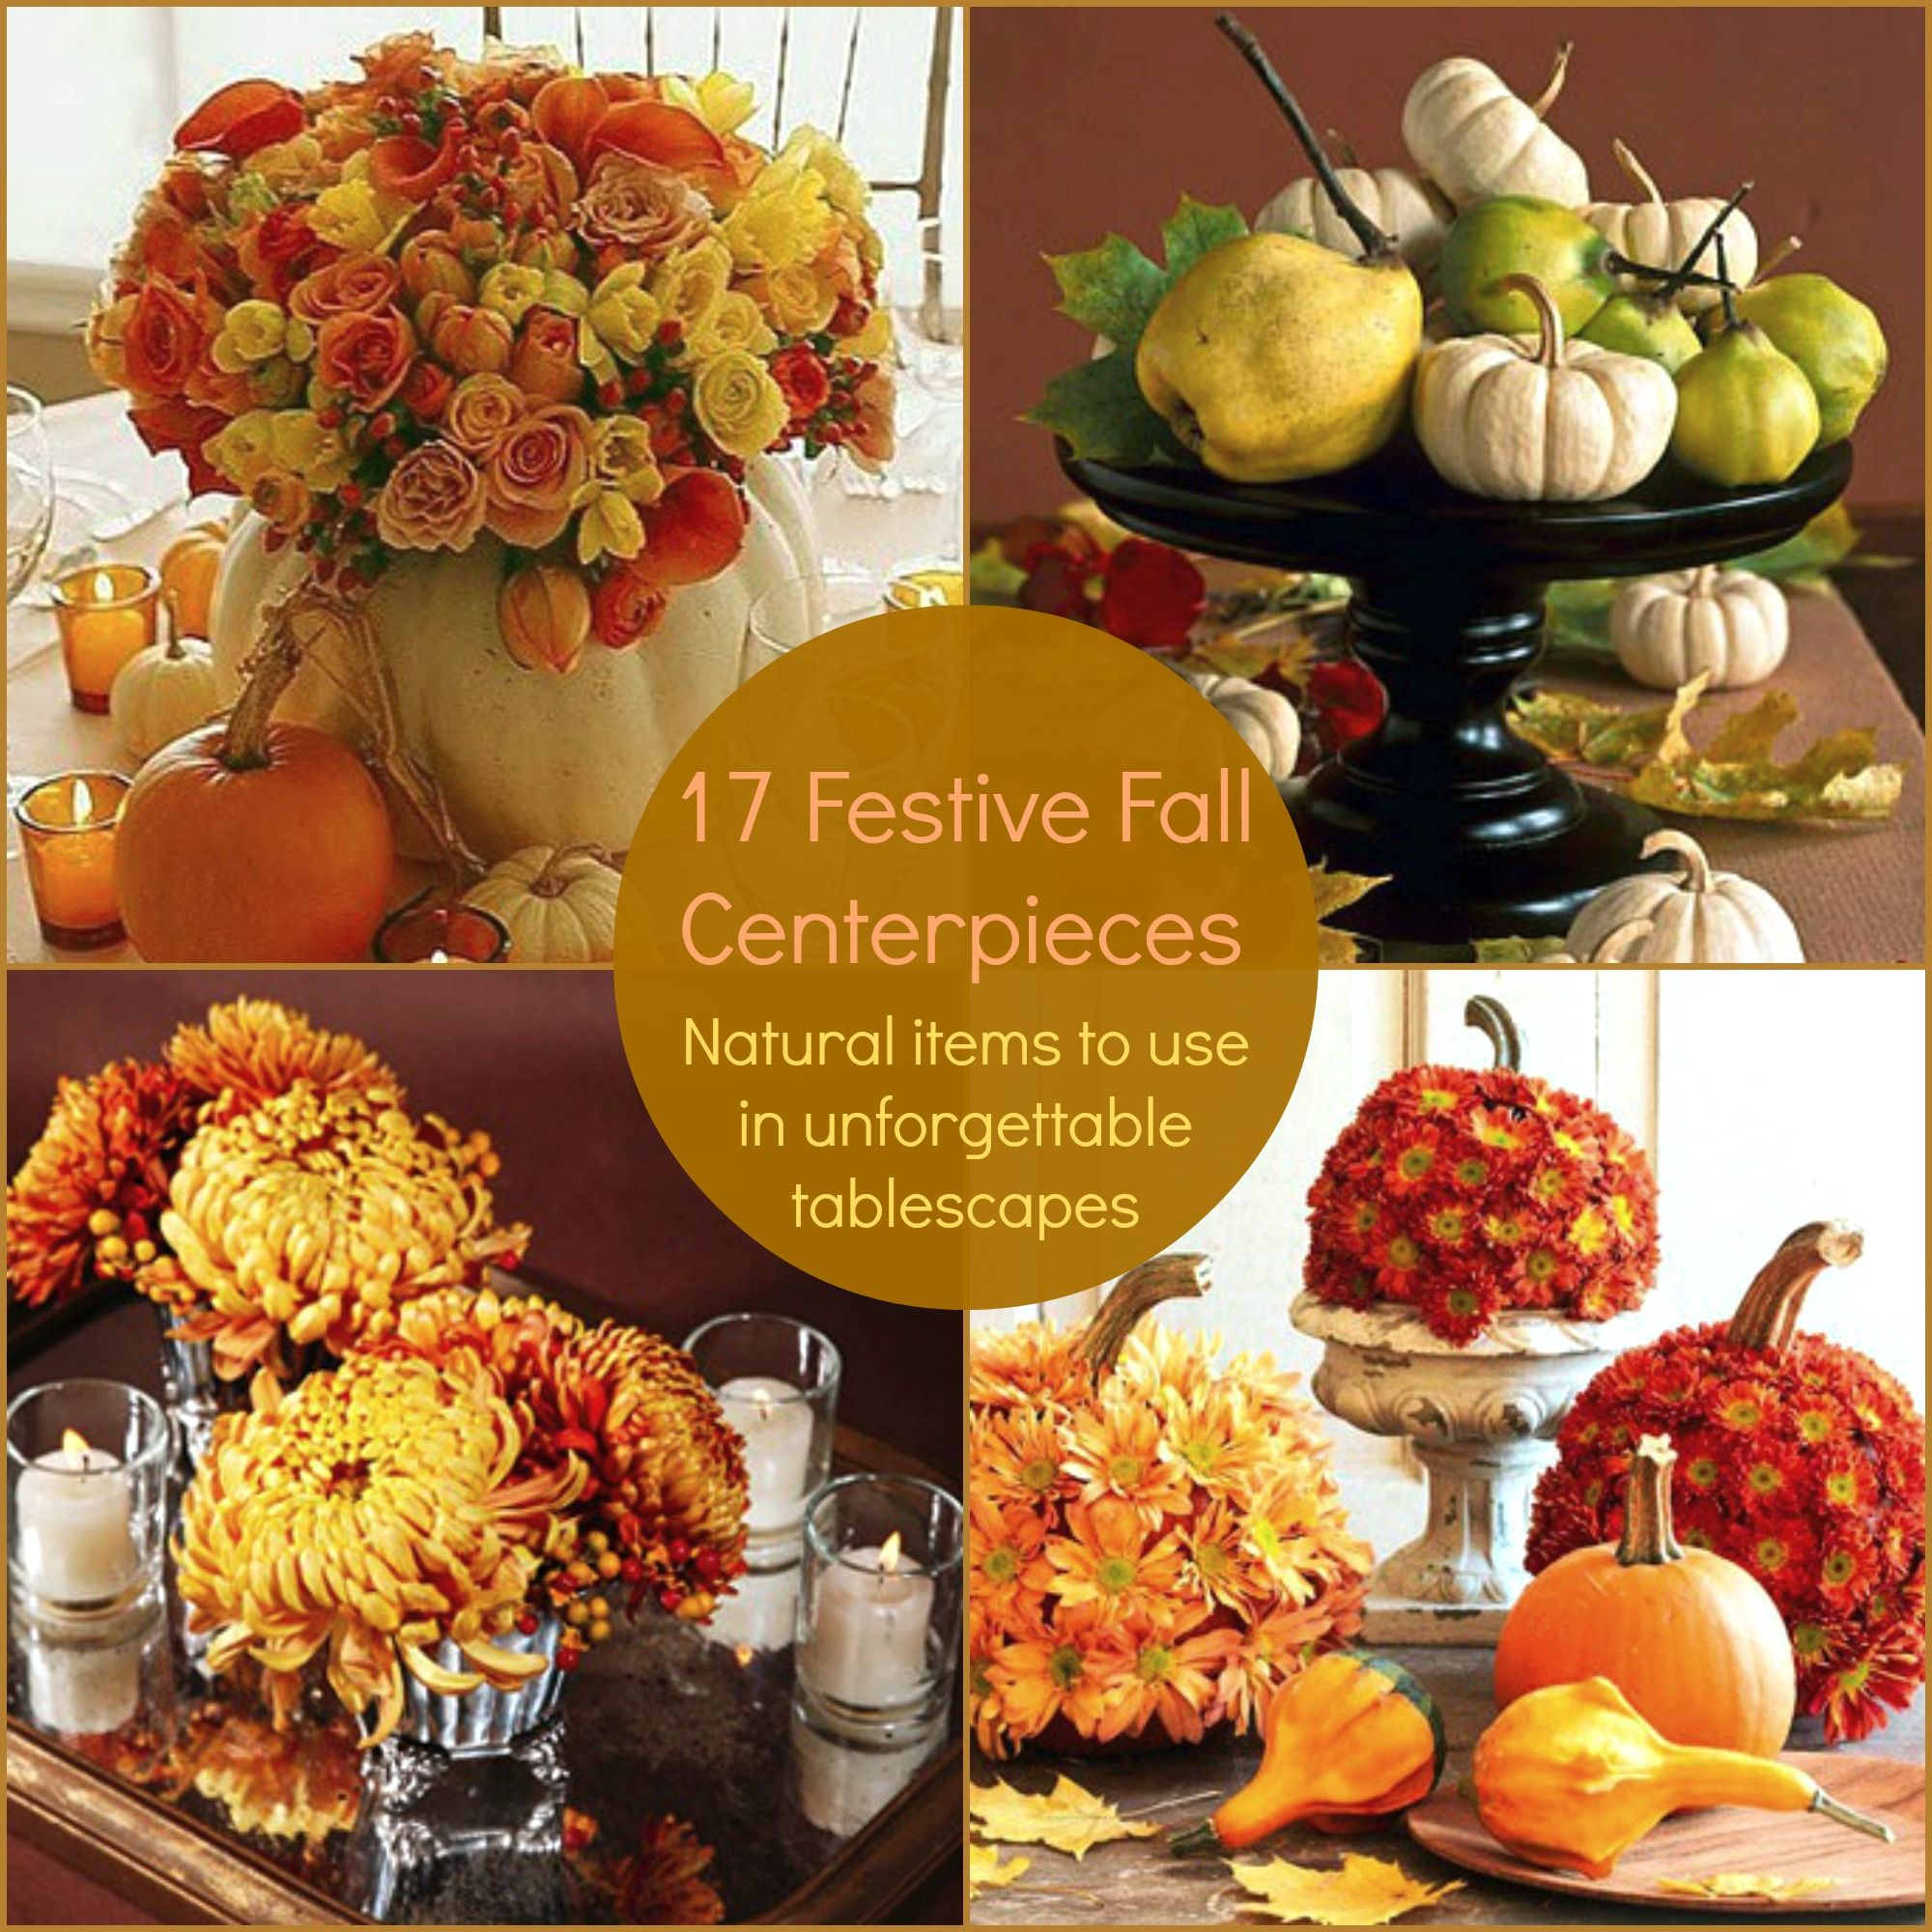 19 Festive Fall Centerpieces